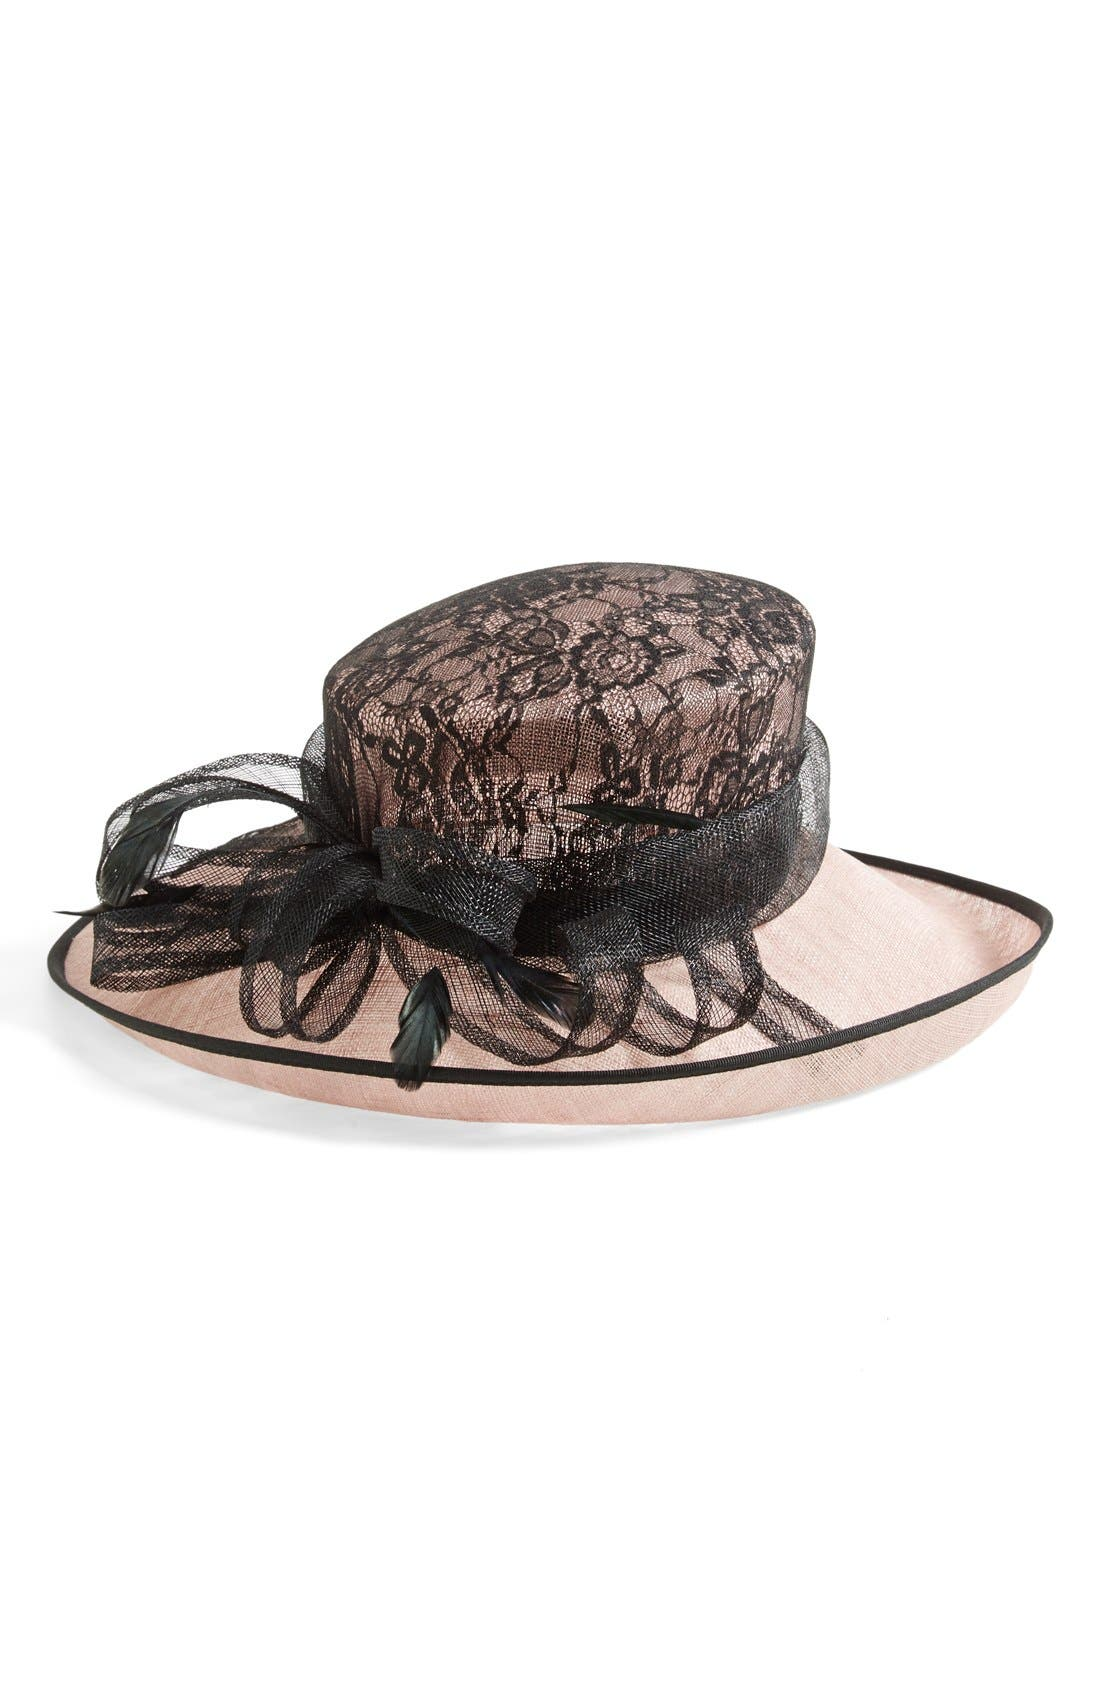 Main Image - Nordstrom Sinamay Hat with Lace Cover Crown